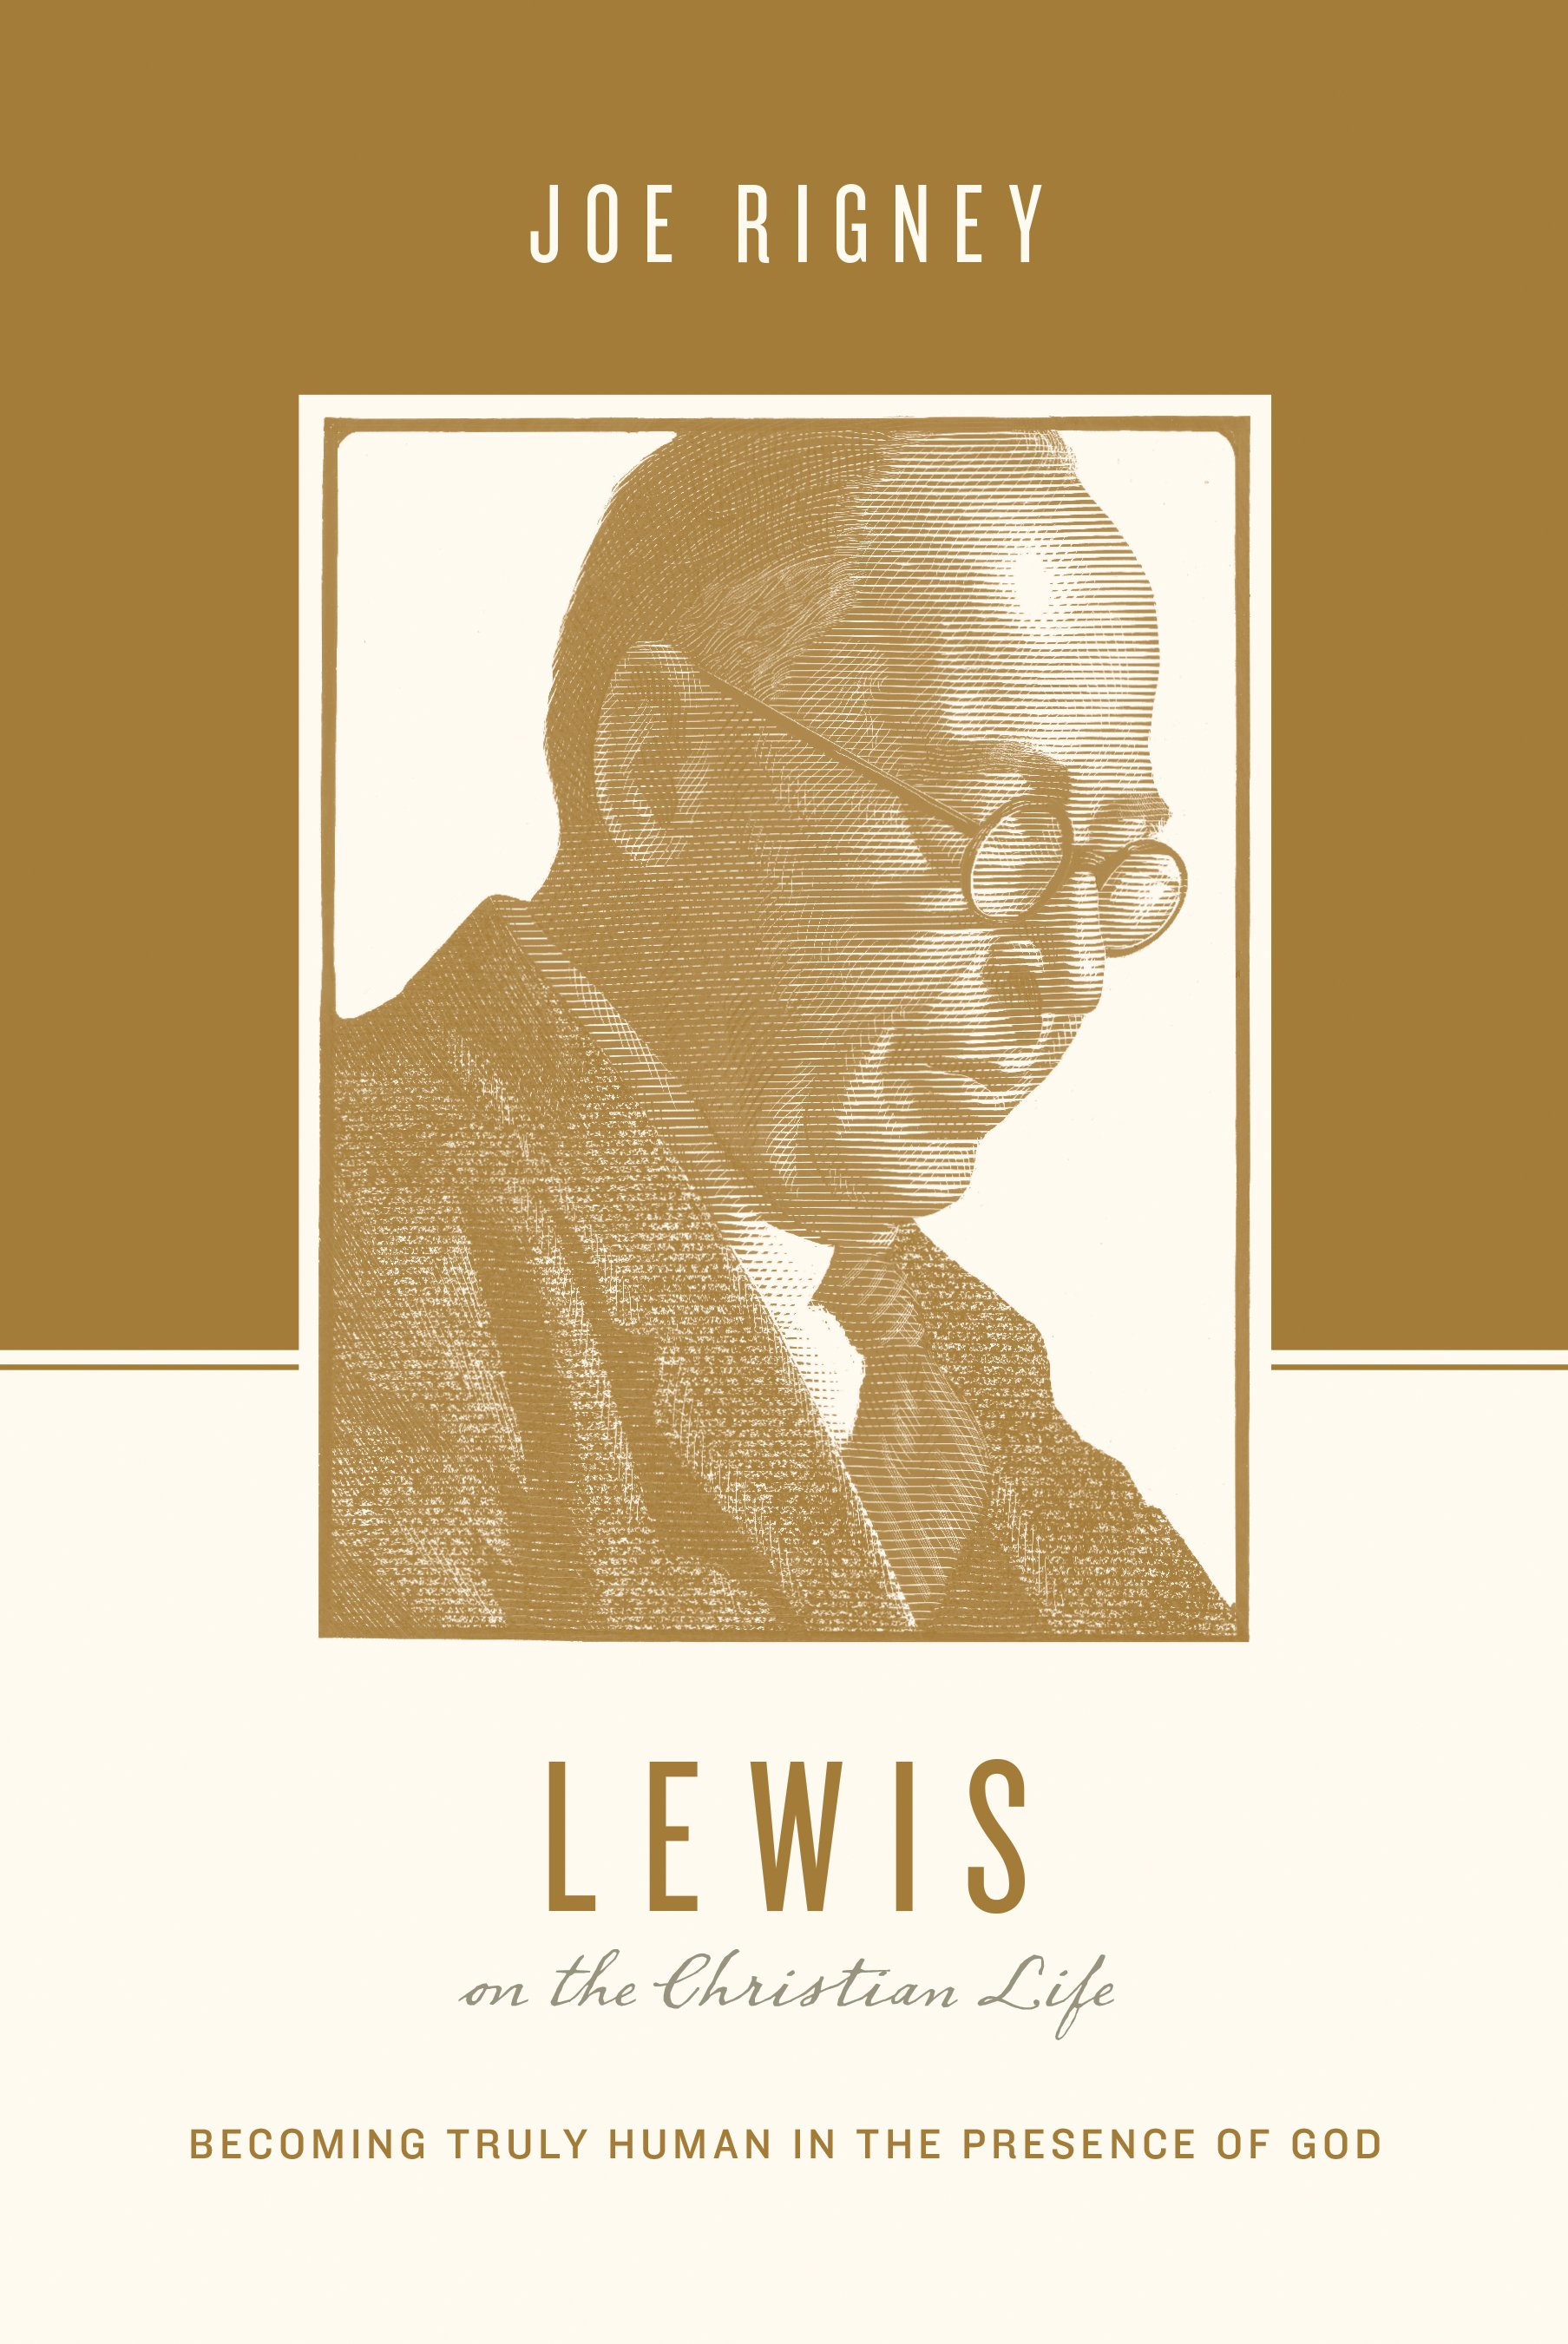 Lewis on the Christian Life: Becoming Truly Human in the Presence of God (Theologians on the Christian Life)